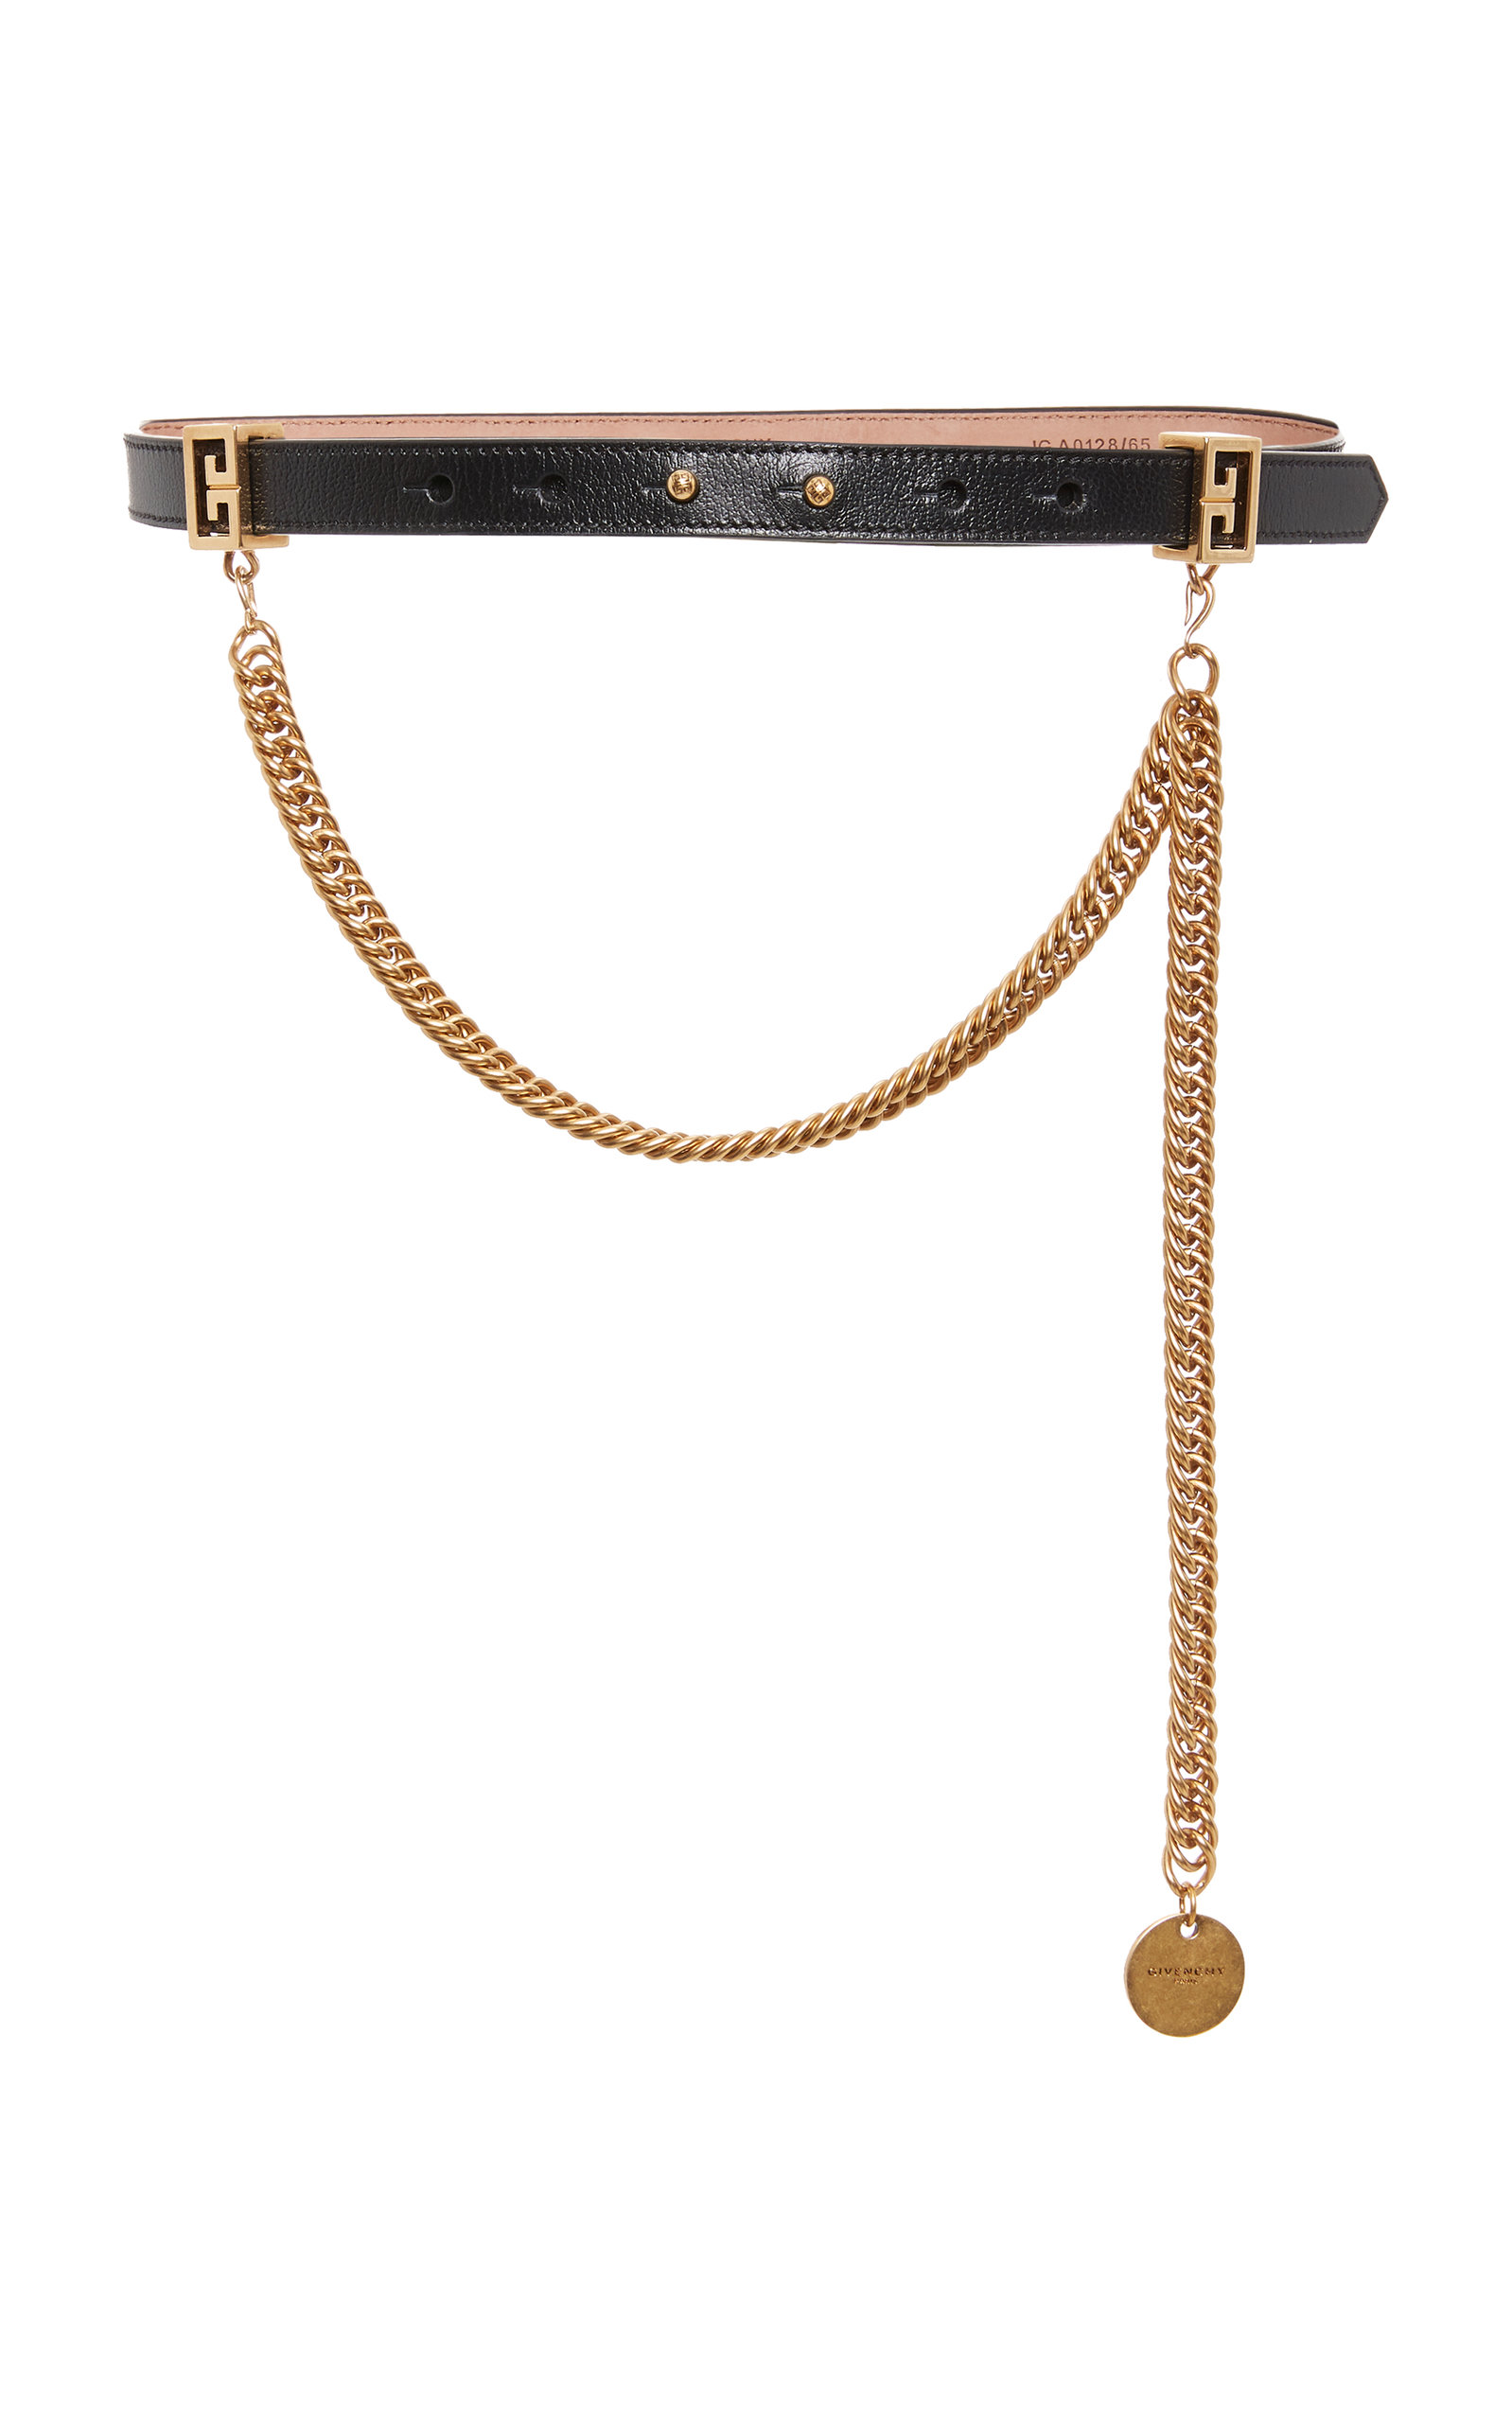 Chain-Trimmed Leather Waist Belt Givenchy wu403f0kC